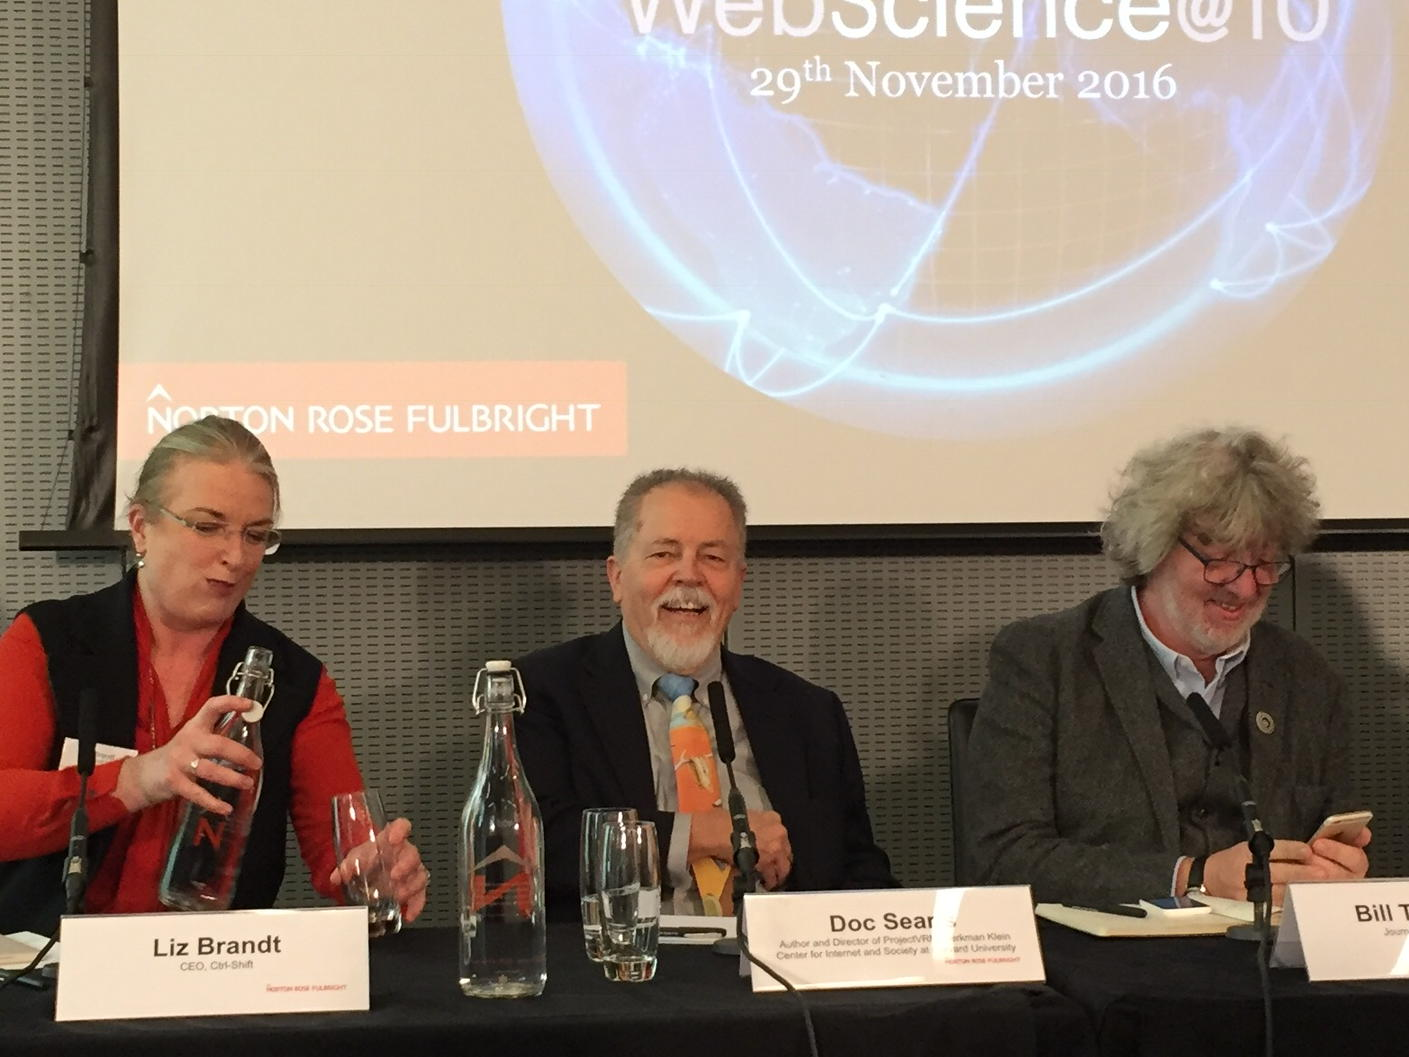 Great to see @dsearls and great smile.  @websciencetrust #WebSci10 https://t.co/cco6jcZ6iJ